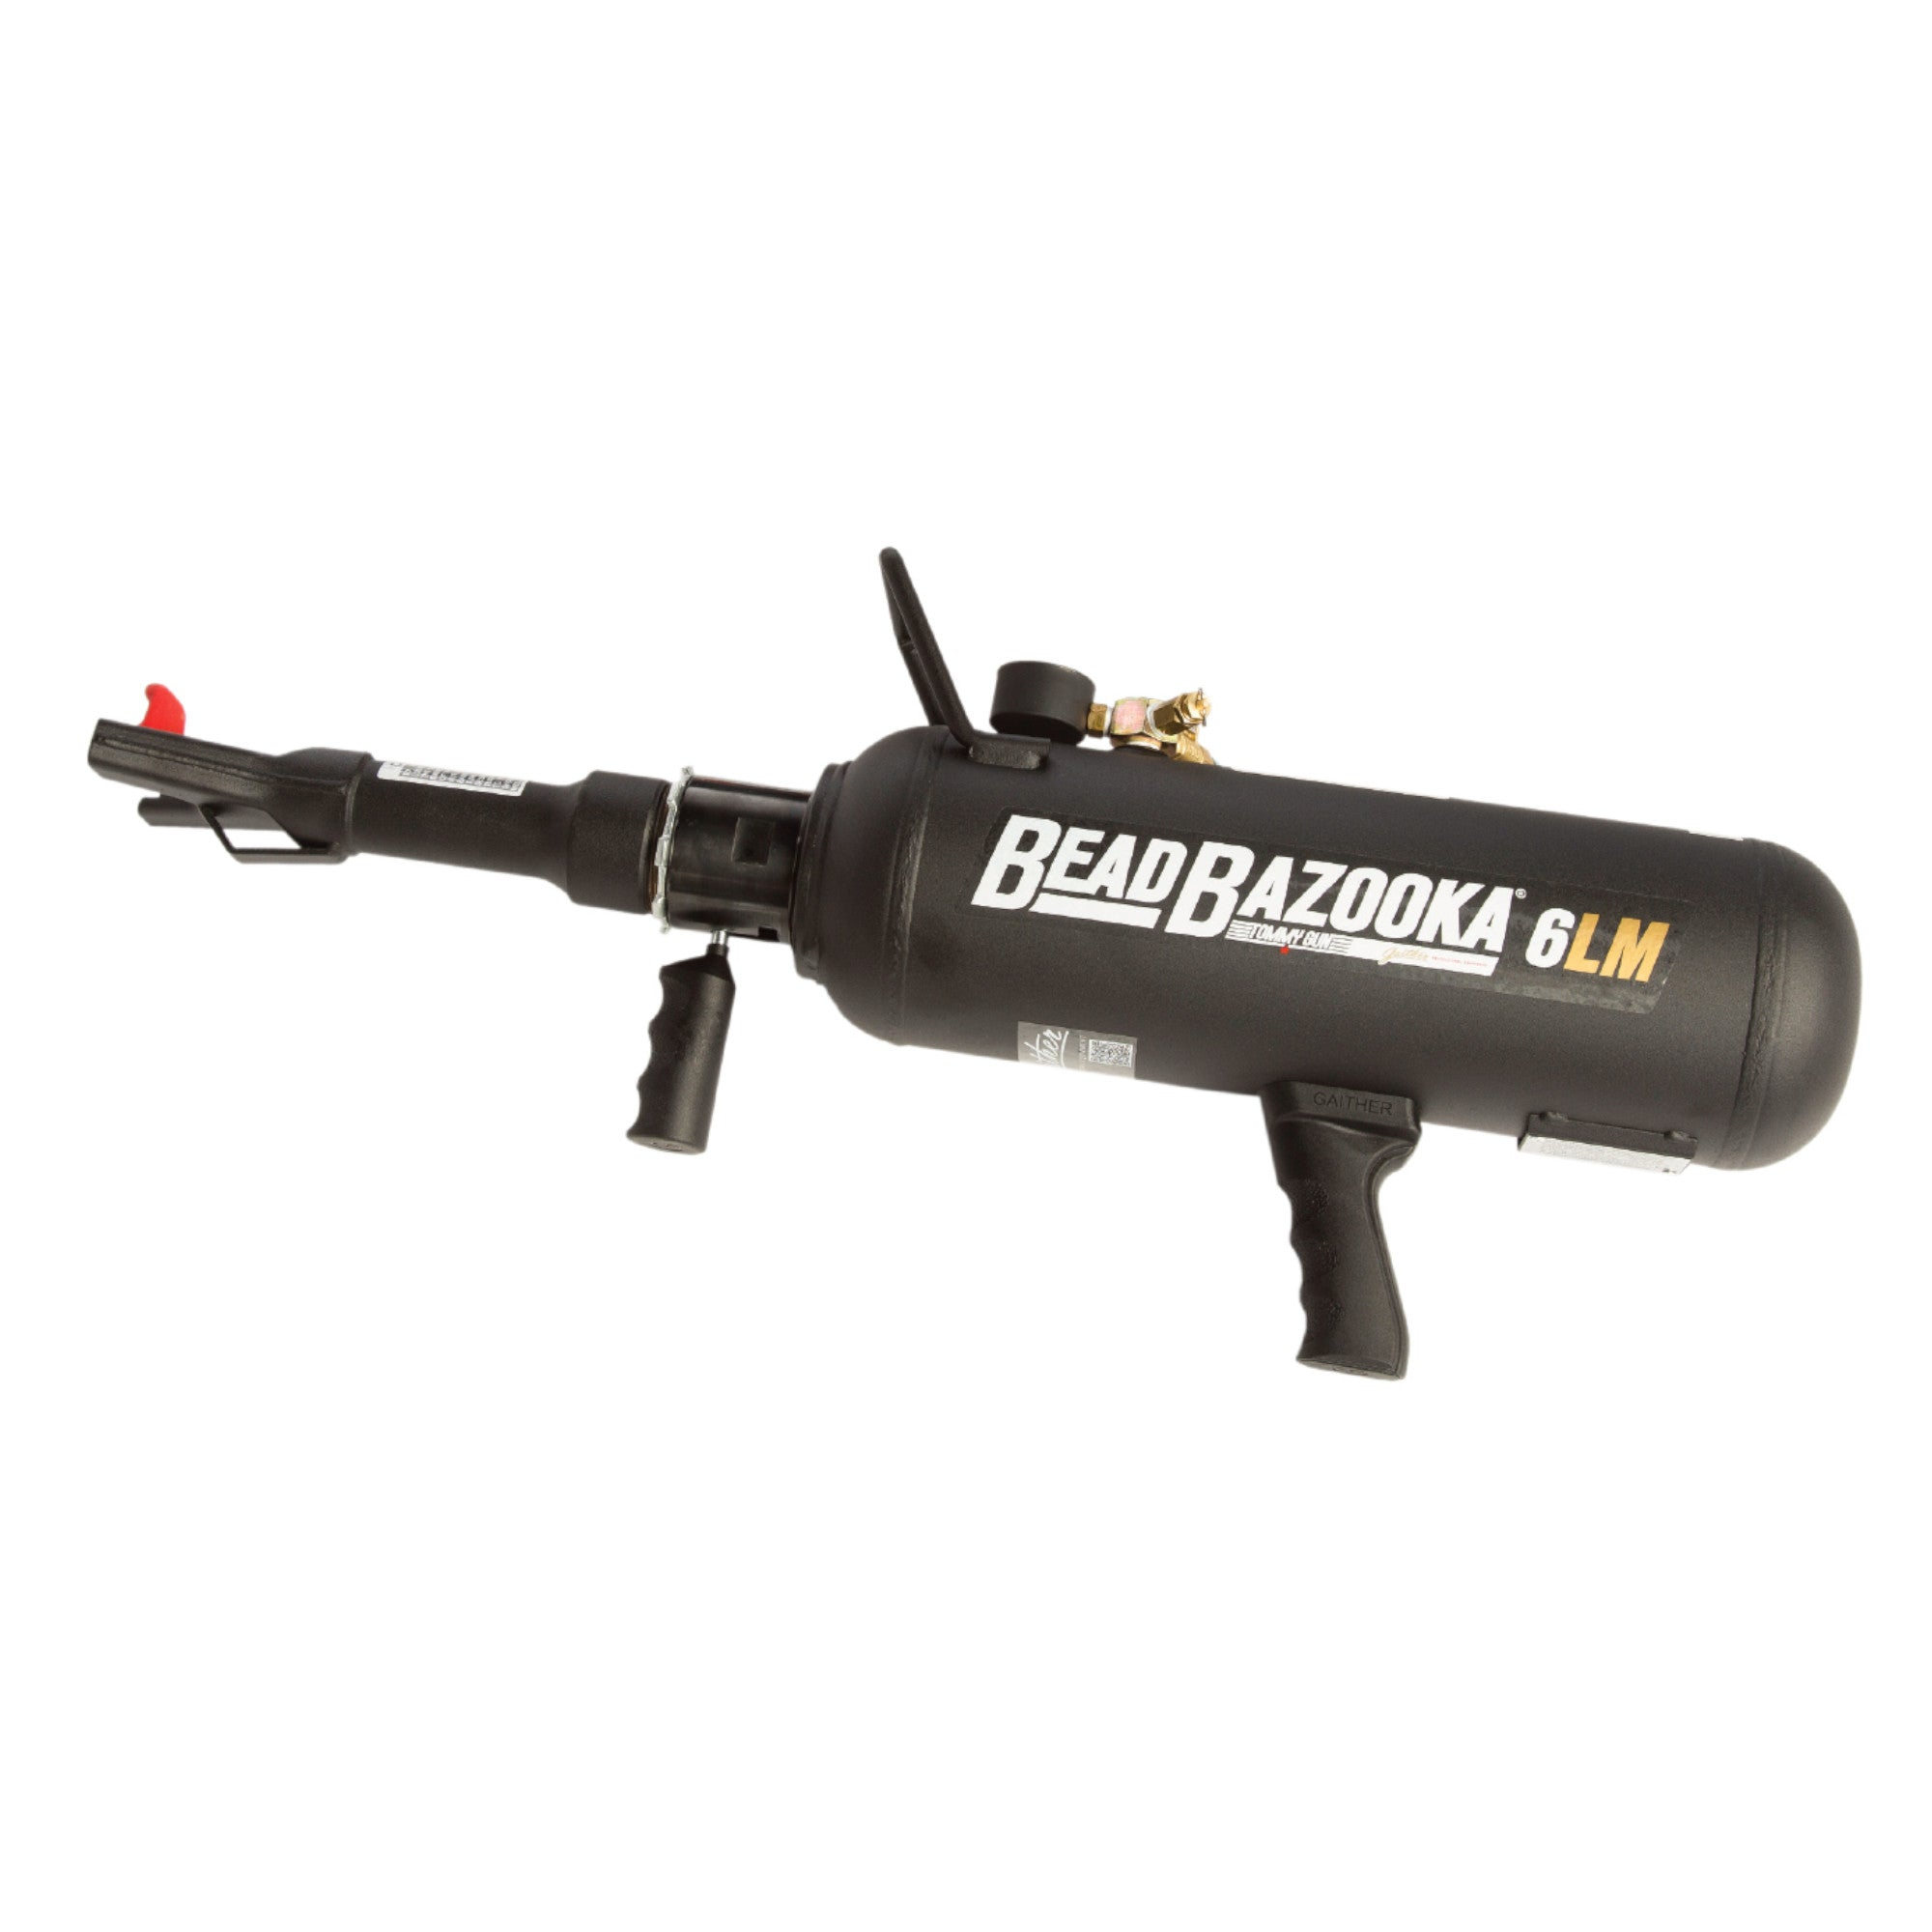 Gaither Tommy Gun Bead Bazooka (6 Liter) (BB6LM)